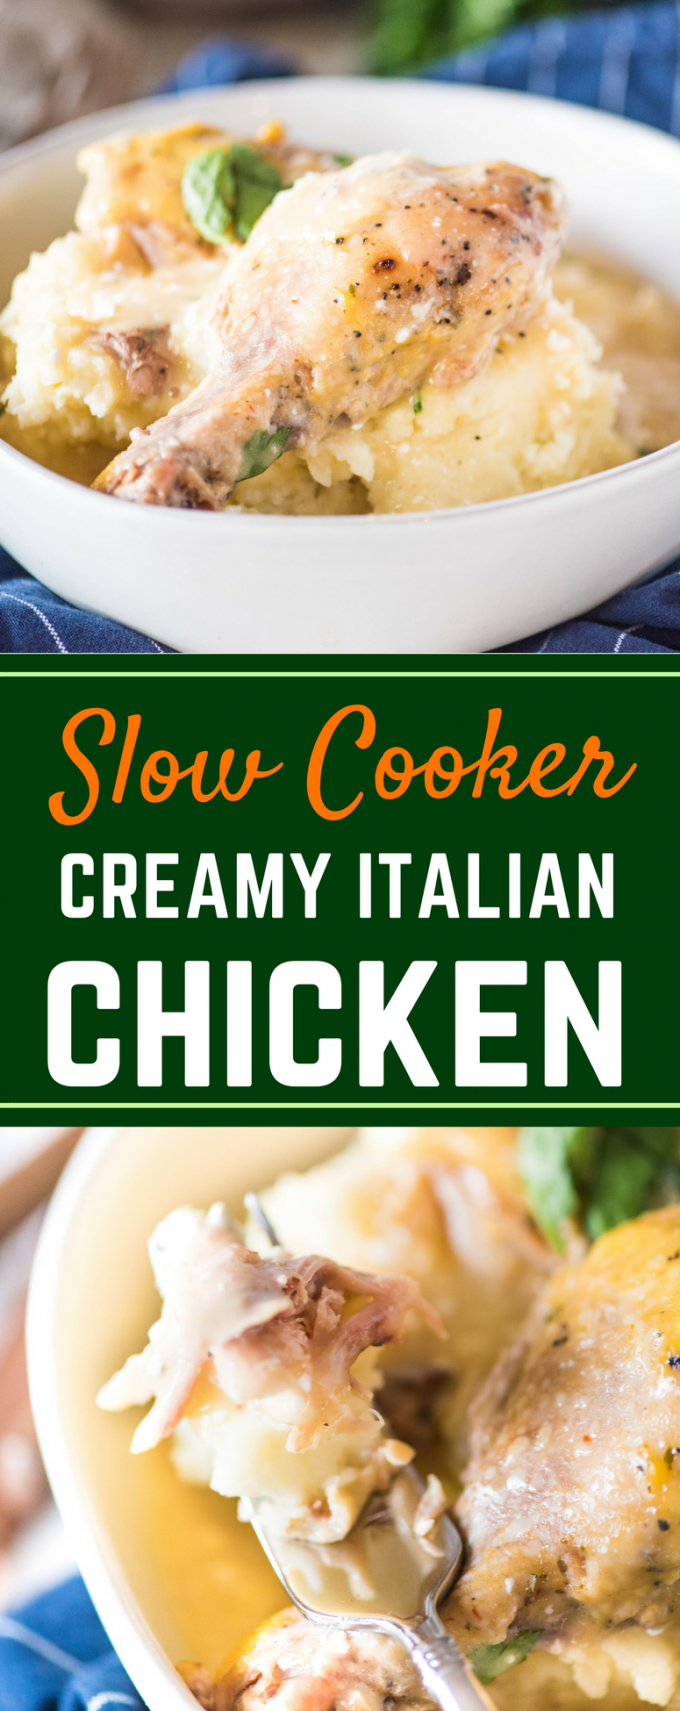 Whether cooked in the crockpot, Instant Pot, or baked, this easy Slow Cooker Creamy Italian Chicken is the ultimate comfort food! It's made deliciously creamy thanks to cream cheese, and tastes best served over rice or pasta. This is a dinner your family will request over and over!